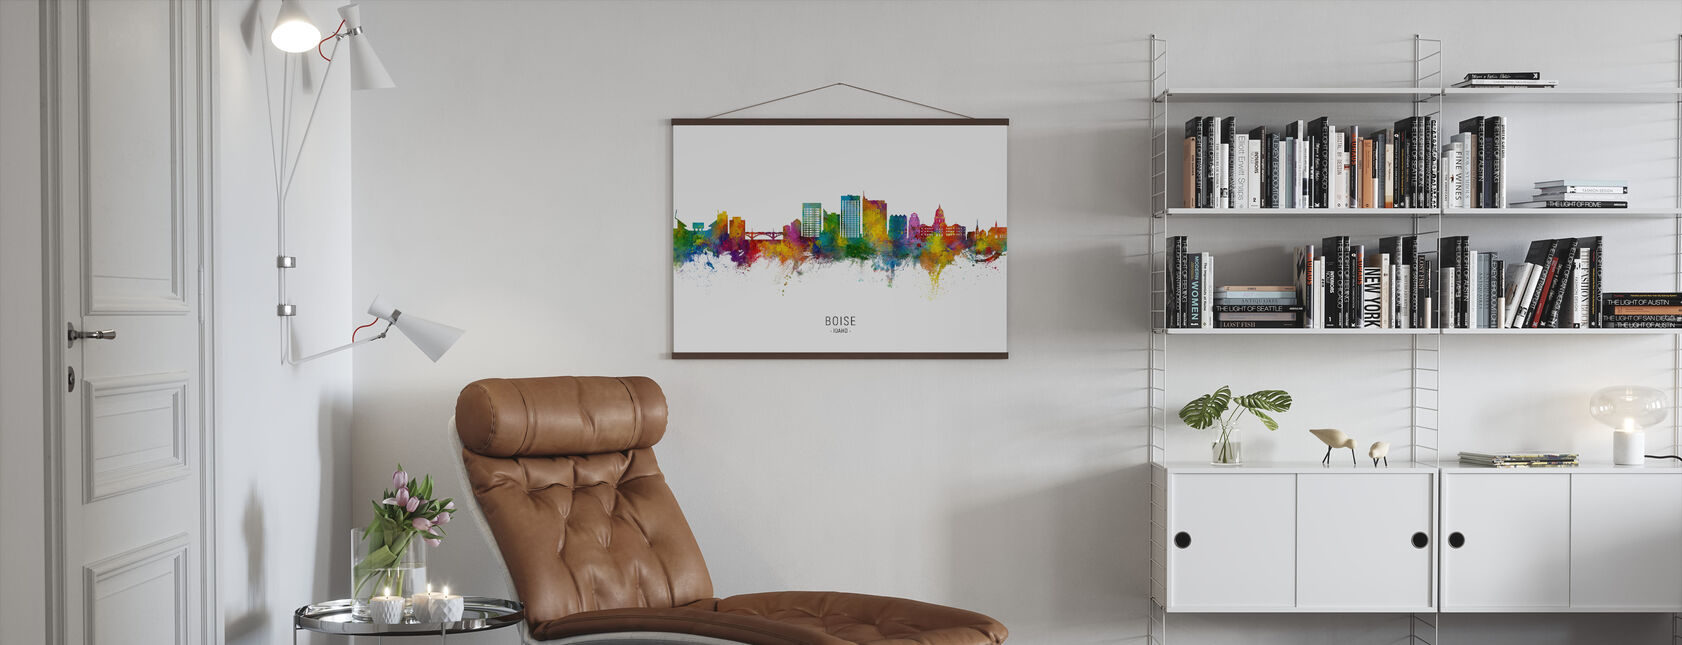 Boise Idaho Skyline - Poster - Living Room